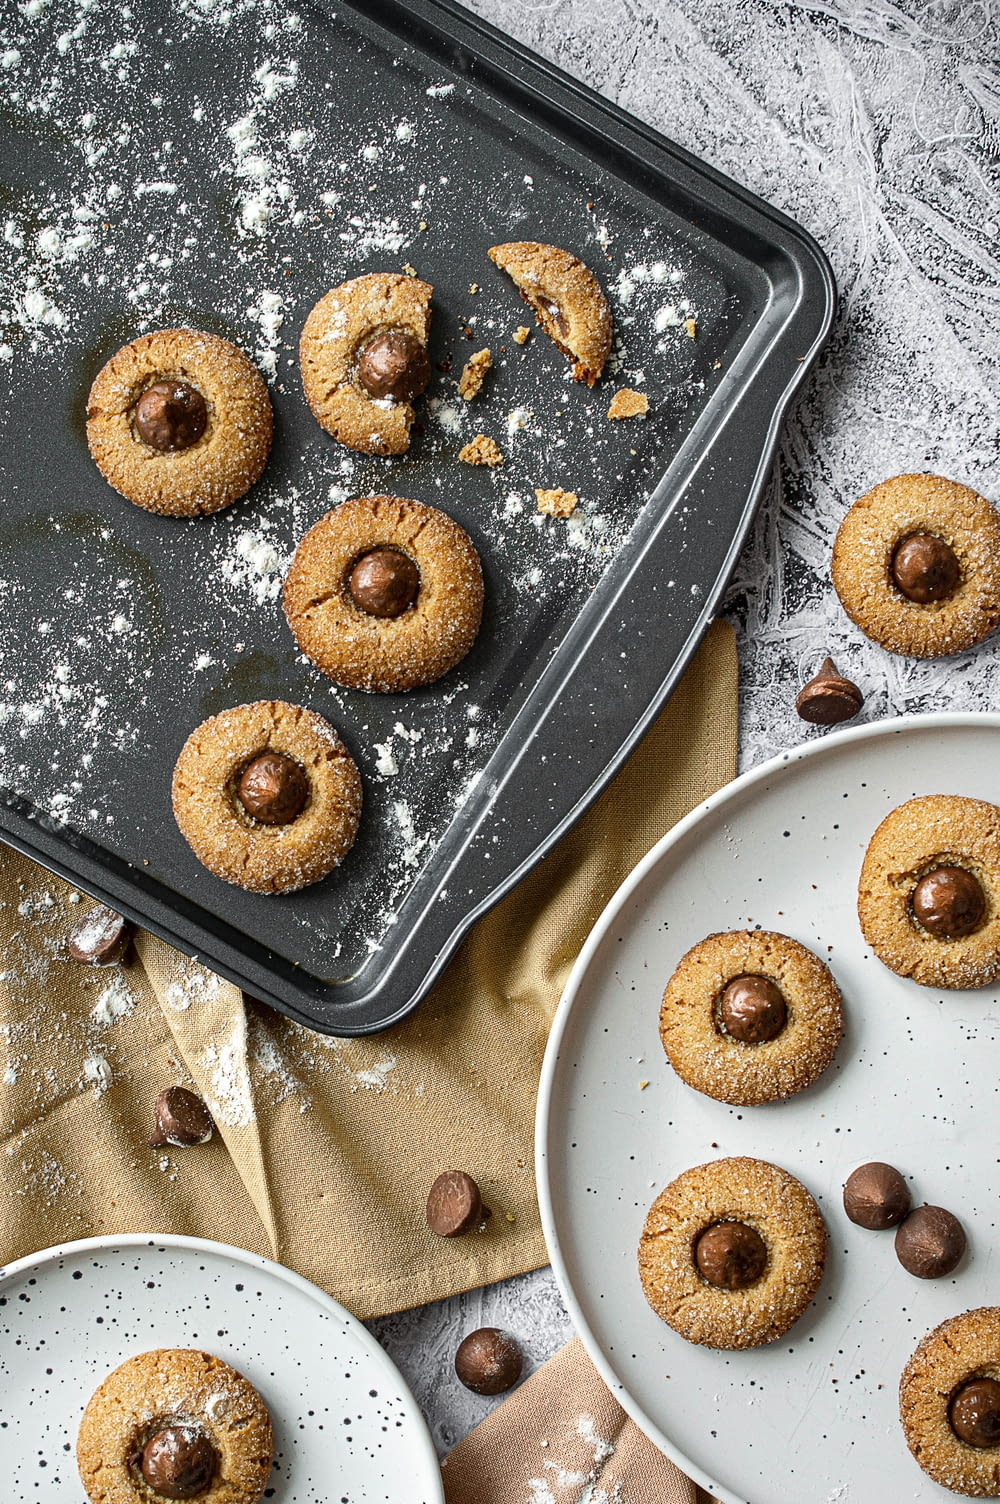 brown donuts on white ceramic plate